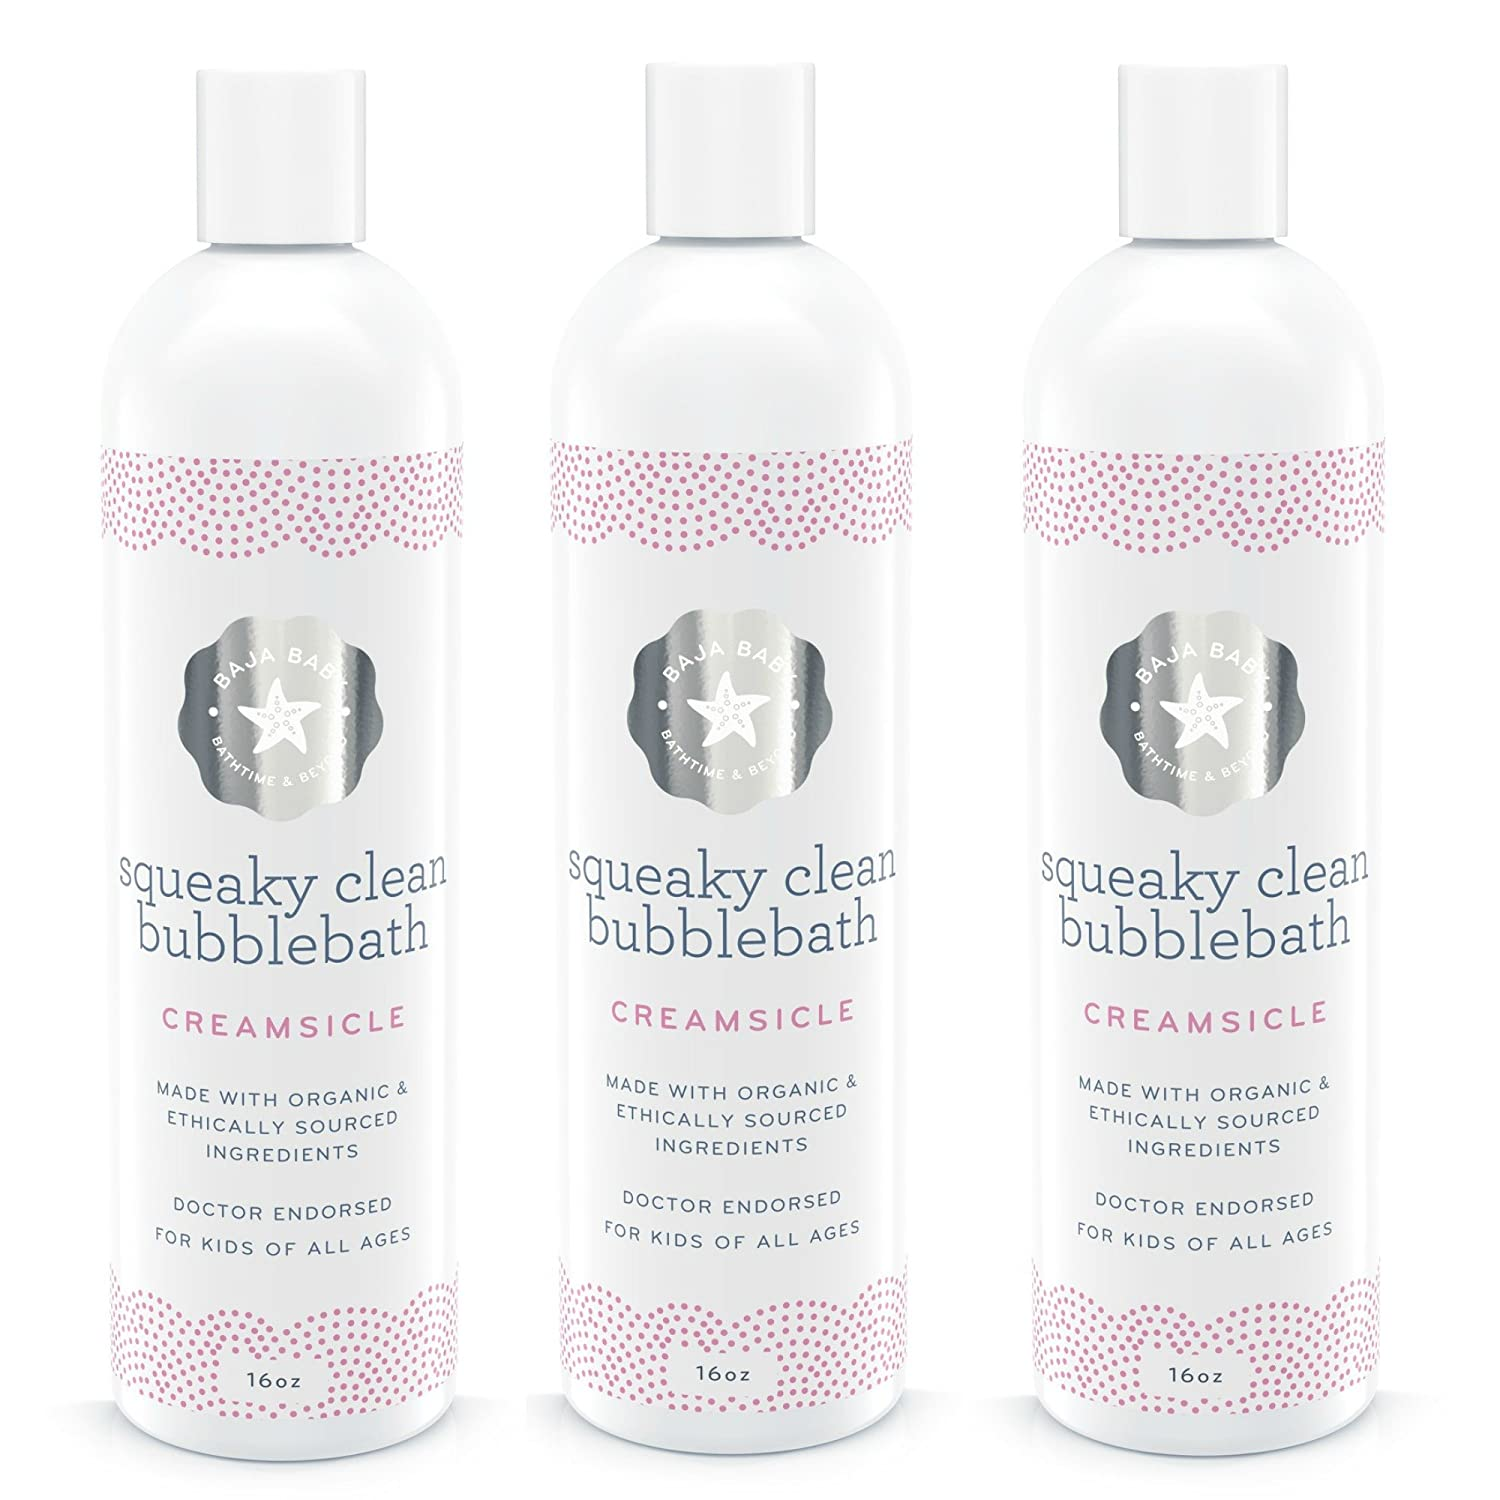 Baja Baby Creamsicle Bubble Bath - EWG VERIFIED- 16oz - Free of Sulphates, Parabens, and Phosphates - Organic, Natural Bubble Bath - Dr. Approved - 100%! (1 Bottle)